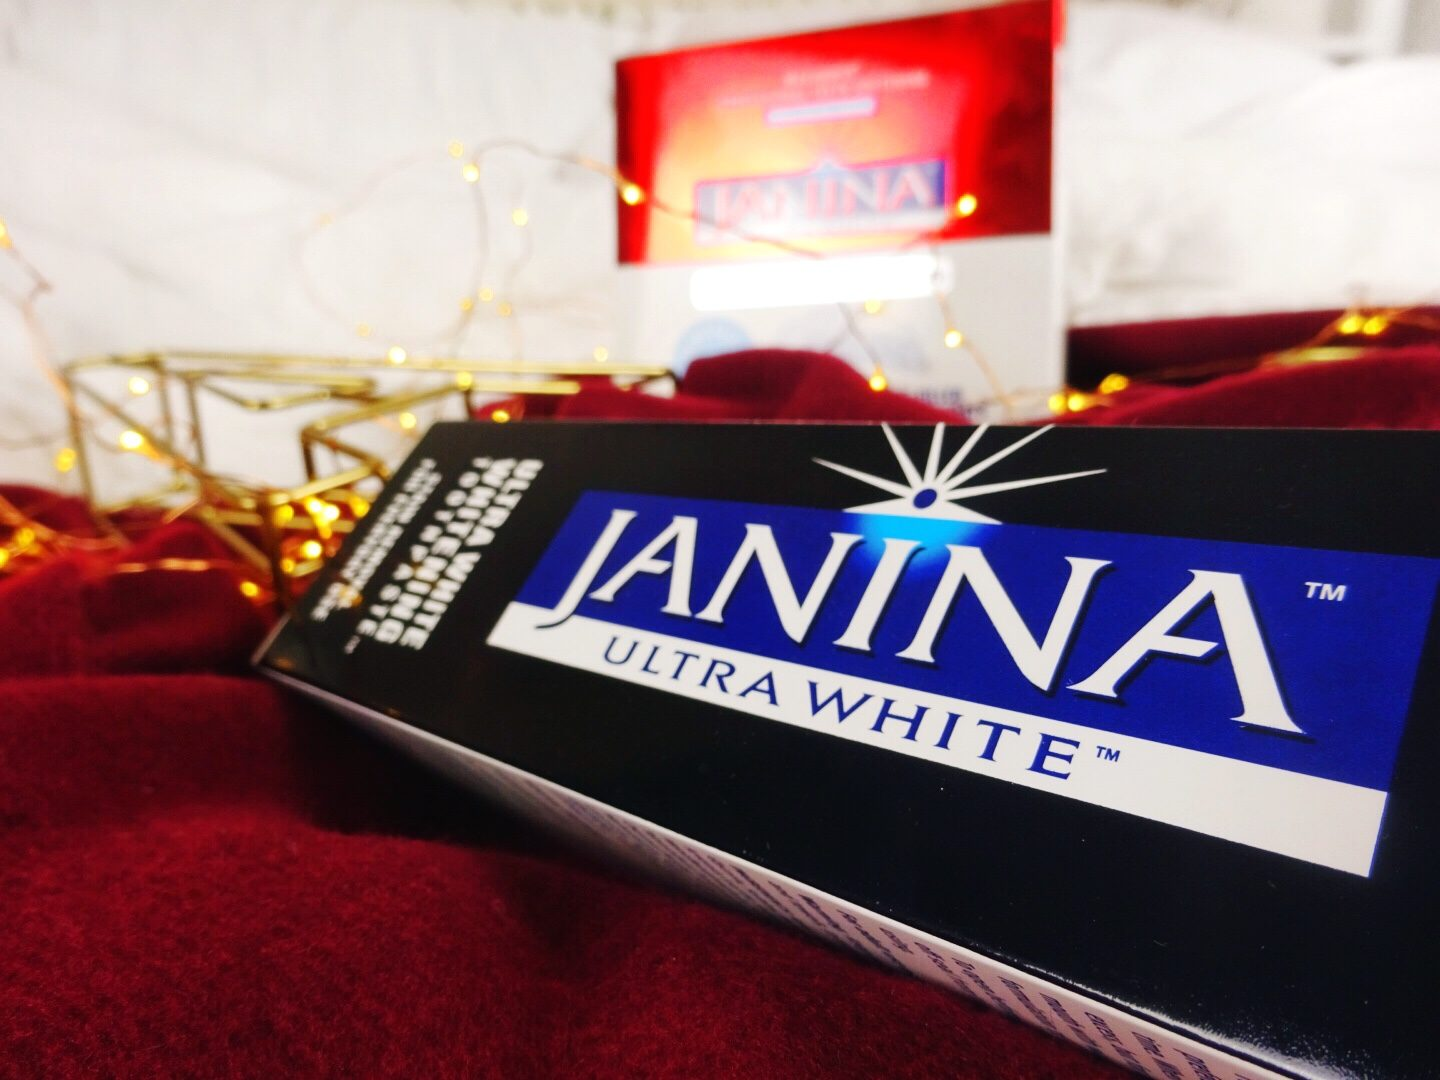 Getting a Whiter Smile for Christmas w/ Janina Ultra White